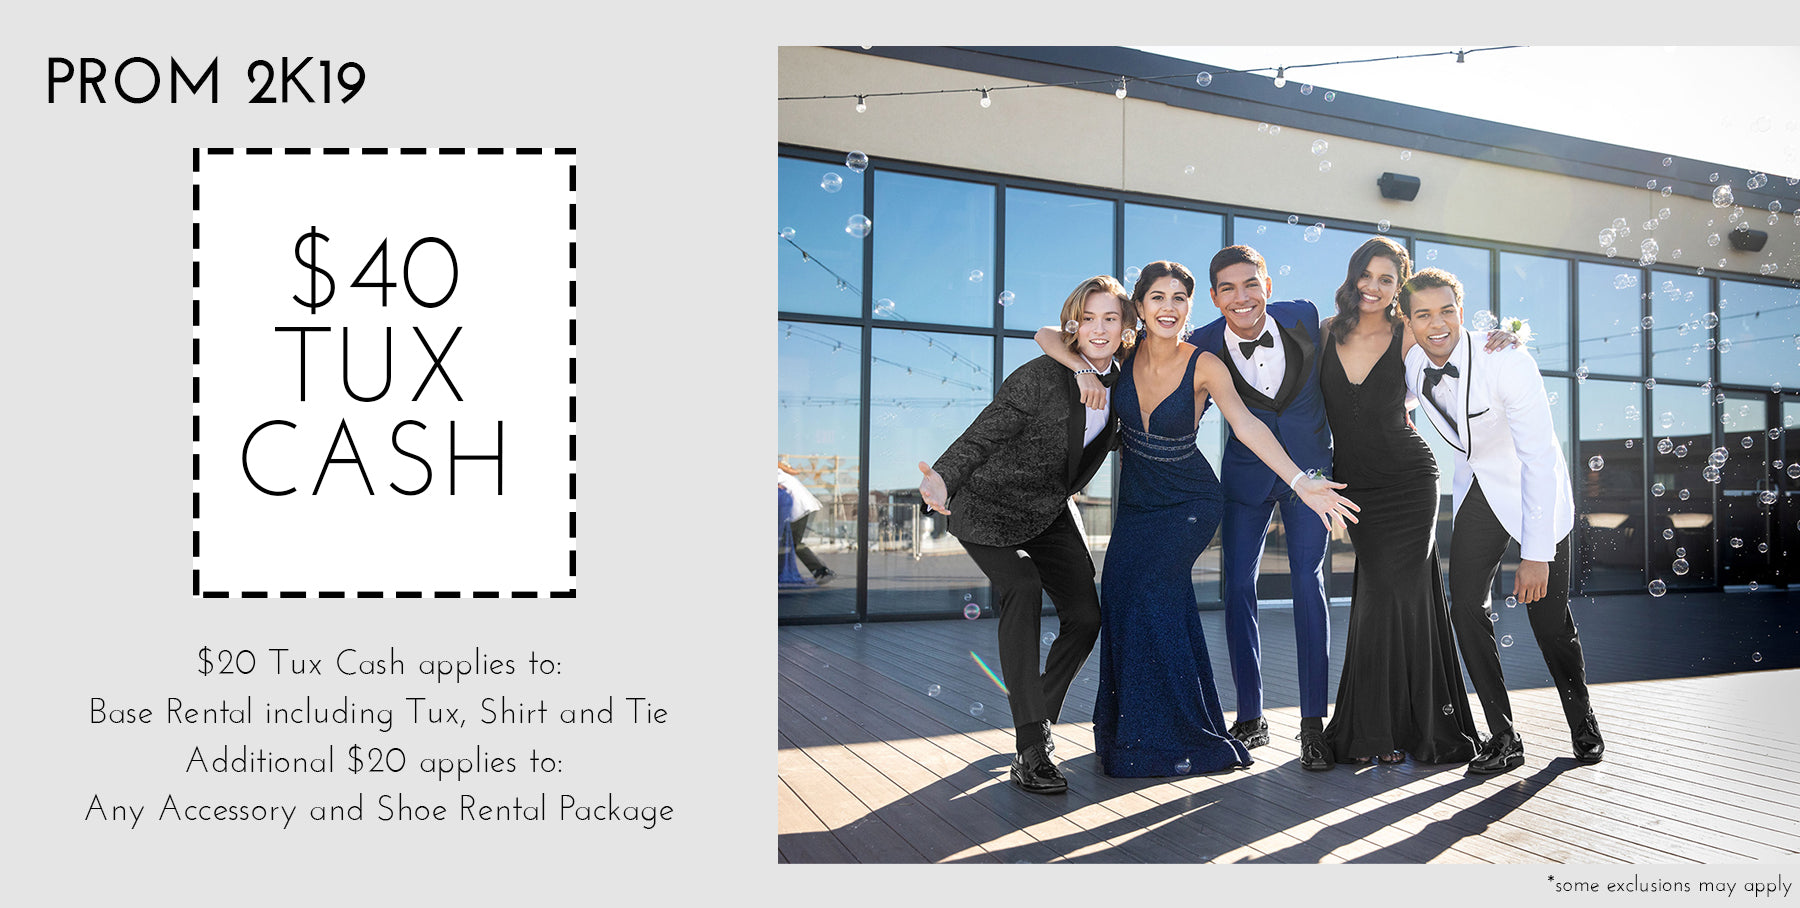 $40 Tux Cash at San Marko PROM 2k19 Tuxedo Custom Formal Wear | Fit Is Everything